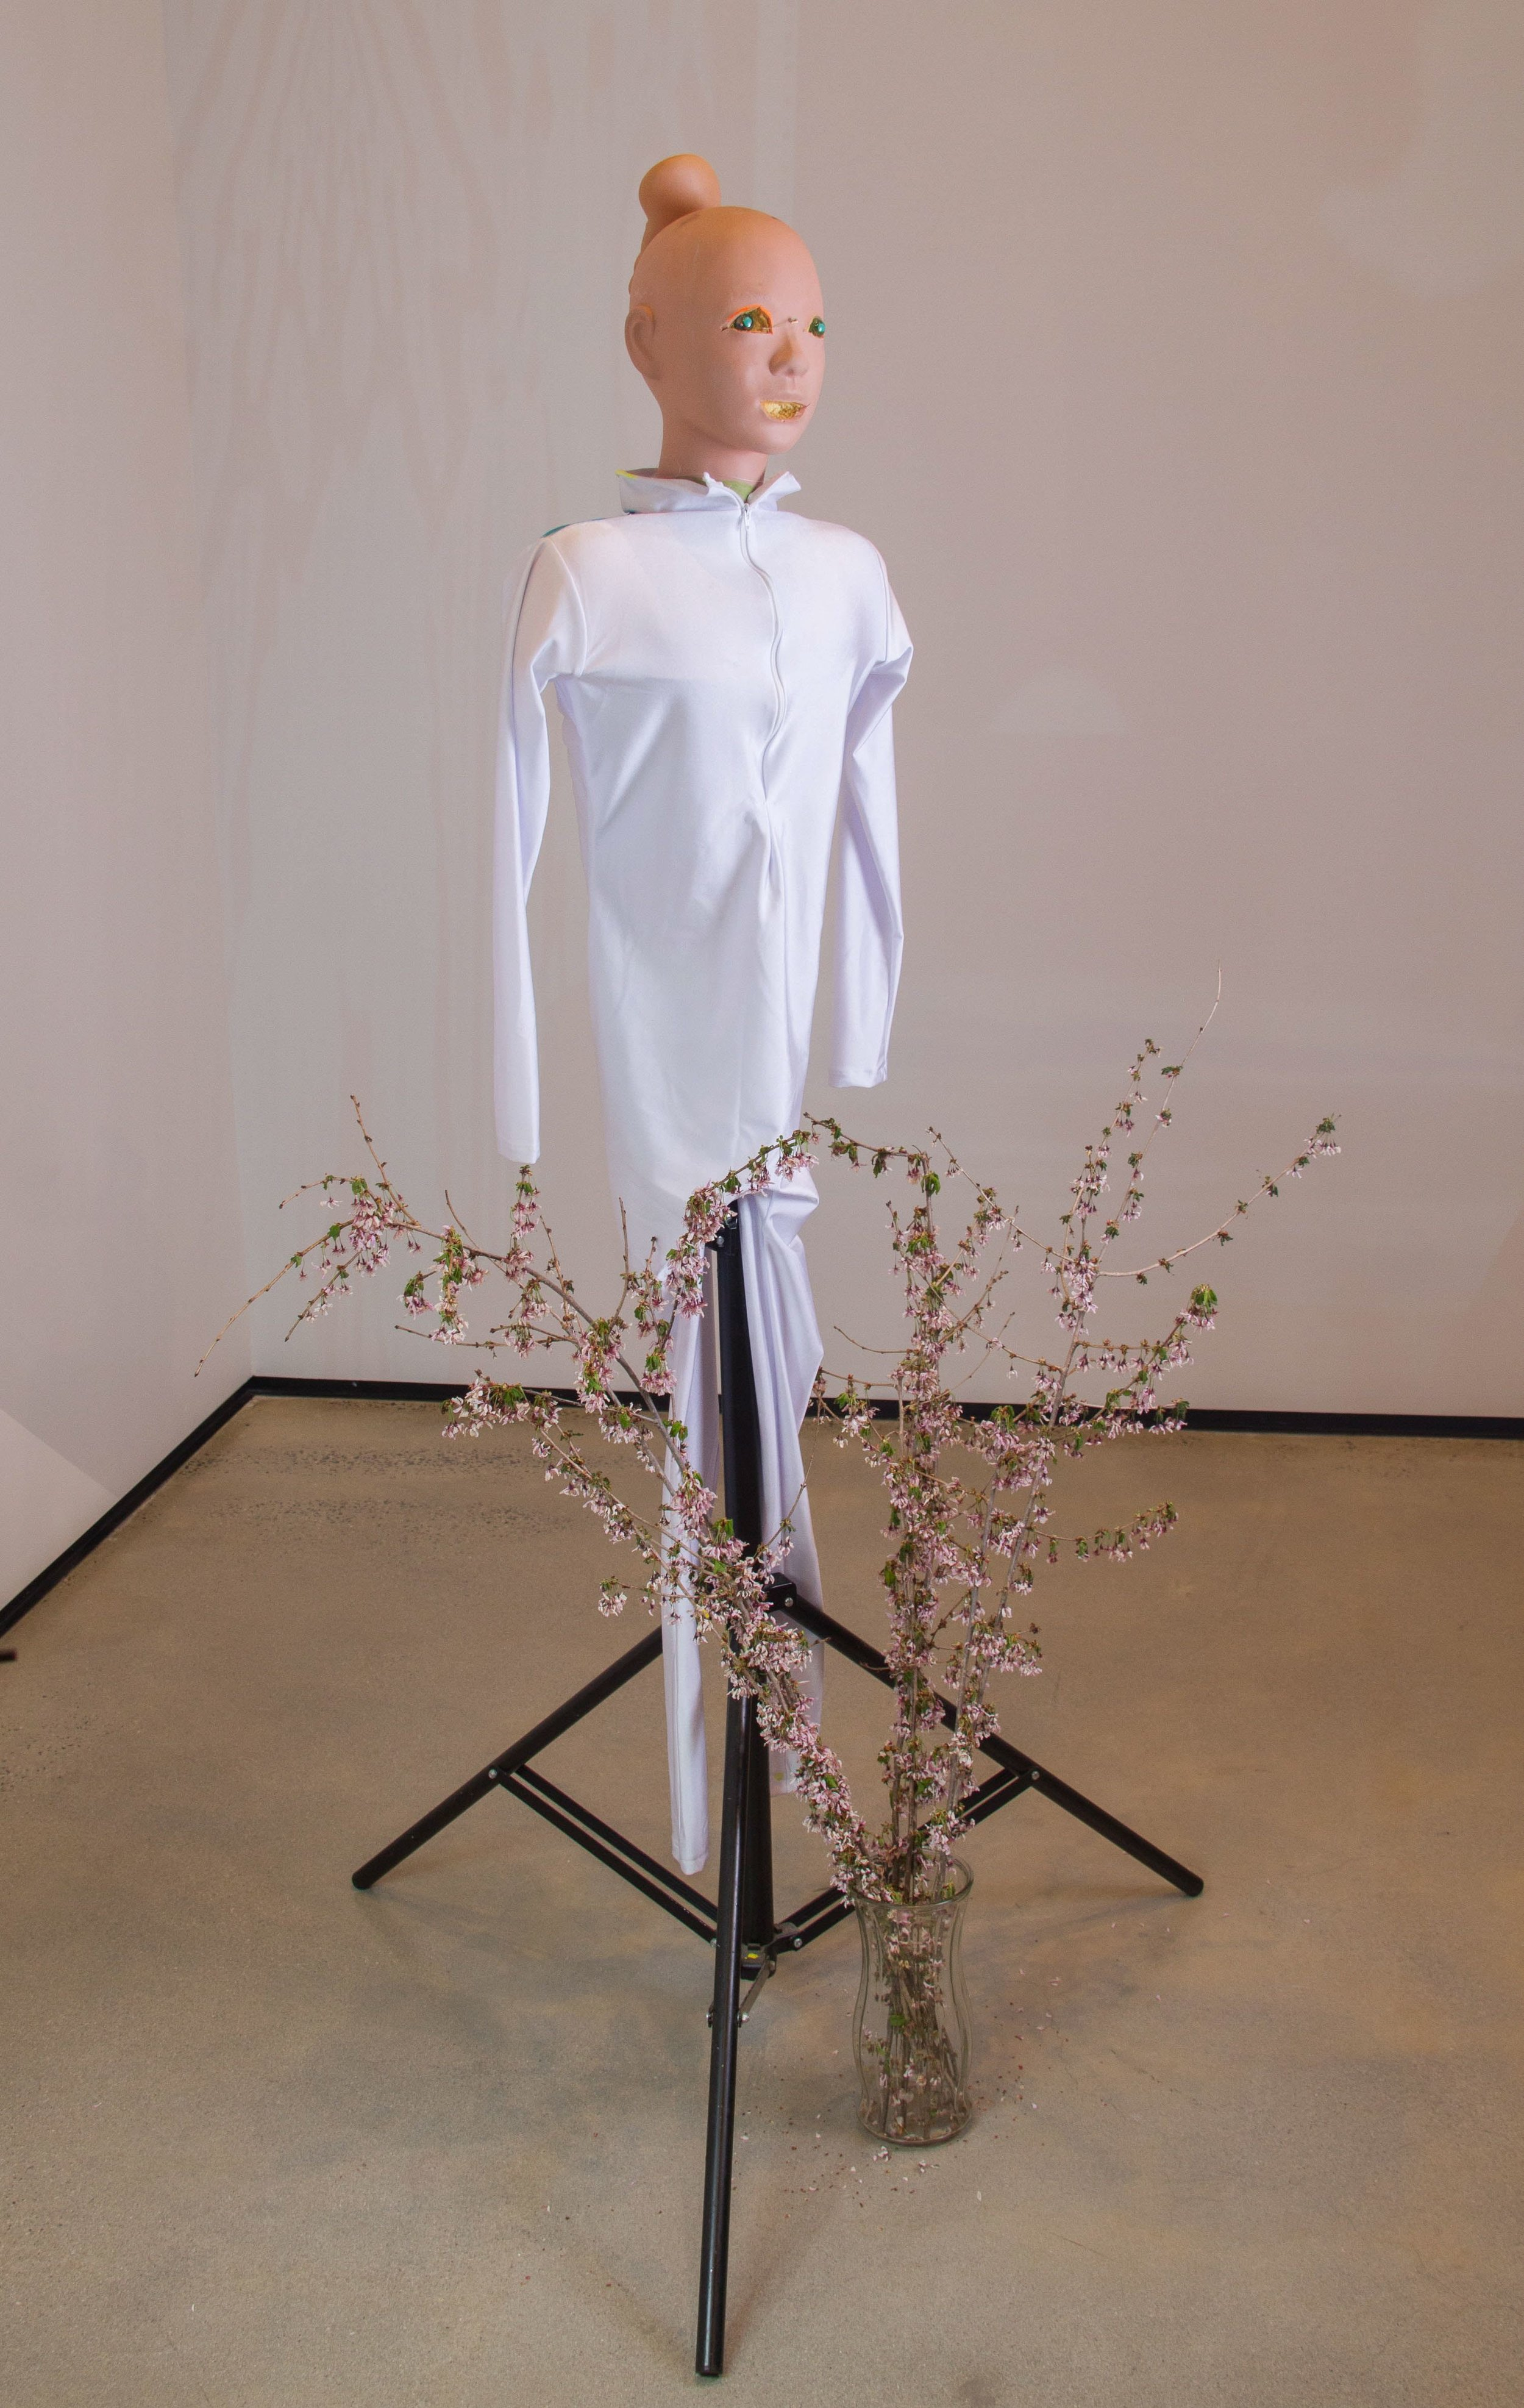 Tommy Hartung    Helena Glory , 2018  Massage mannequin, jumpsuit, prosthetic ear, marbles  68 x 35 x 35in. (172.7 x 88.9 x 88.9cm)